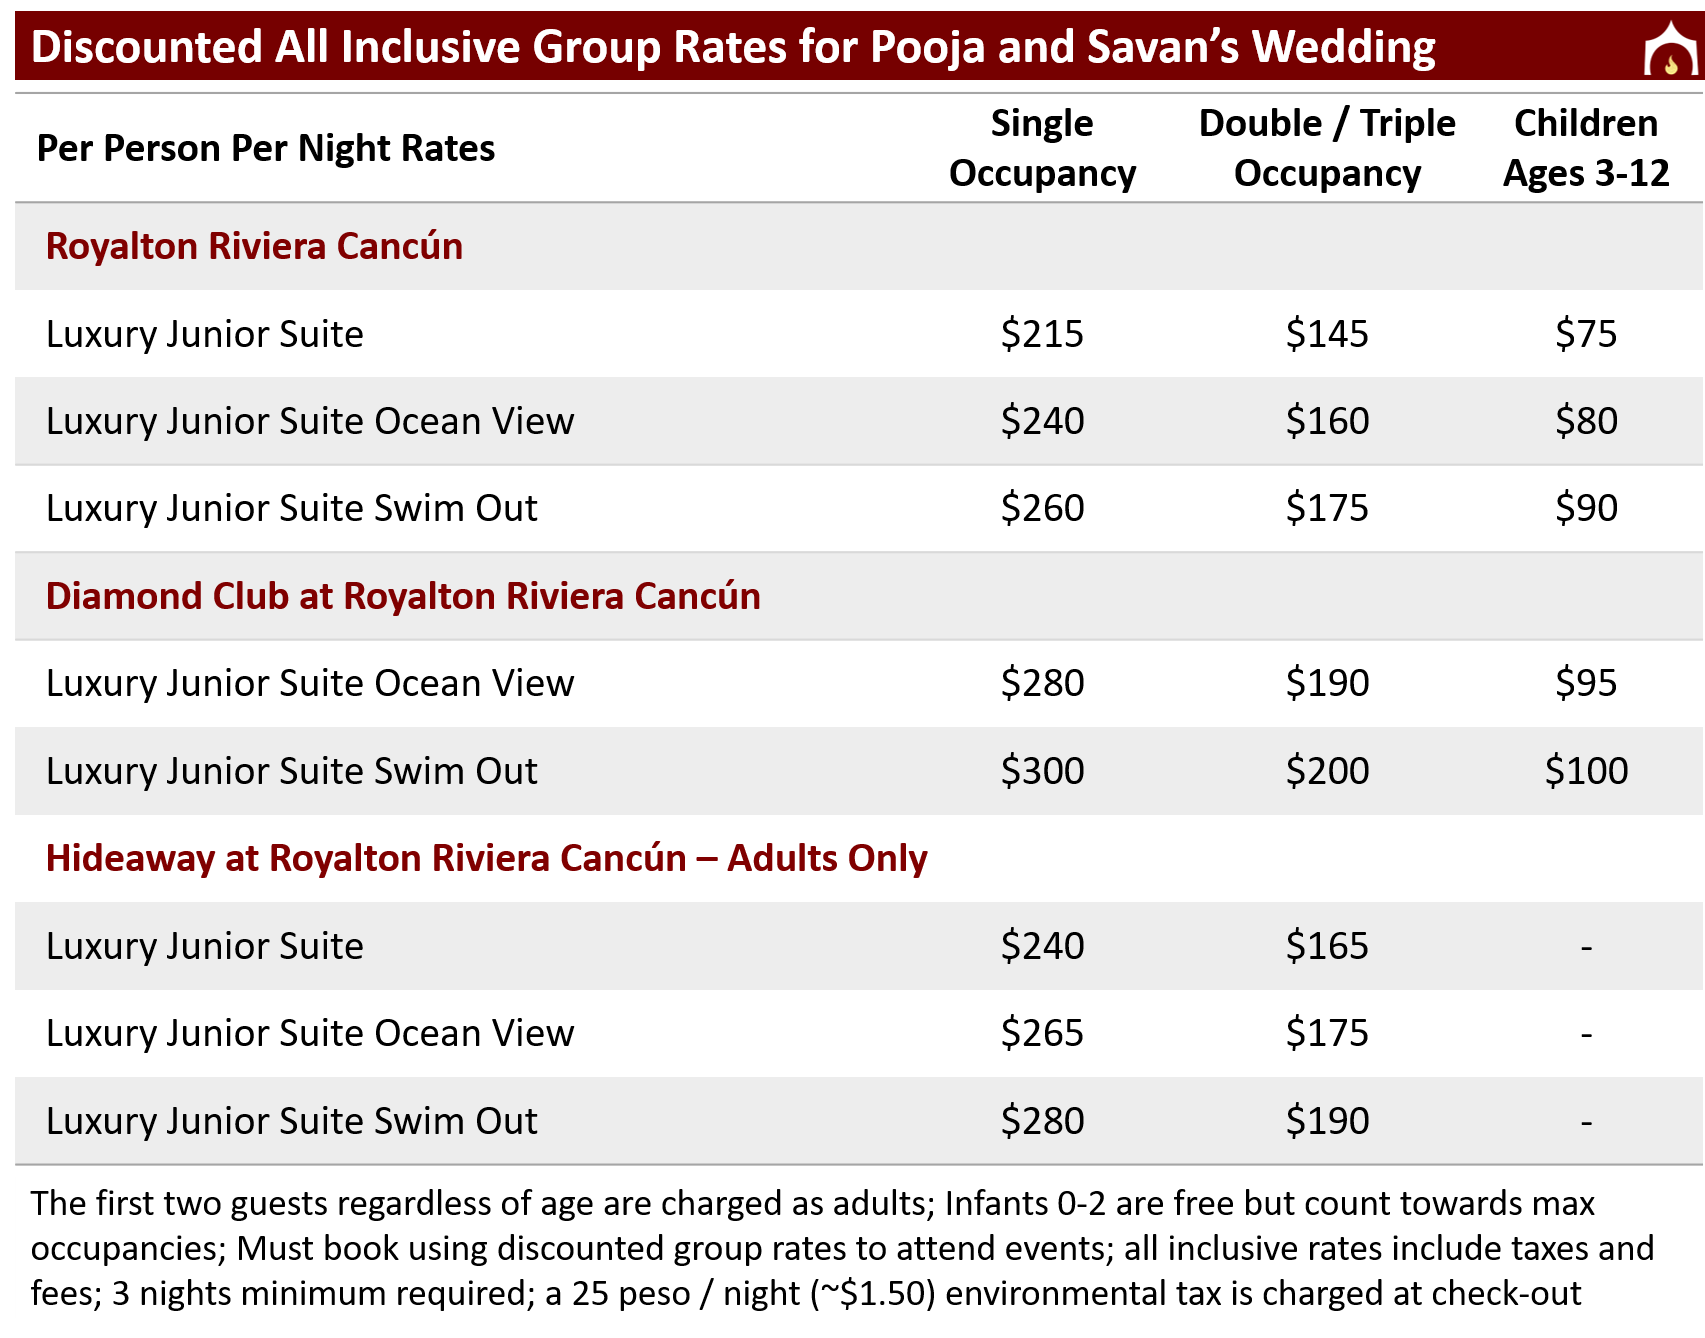 Pooja and Savan - Group Discounted Rate v2.png